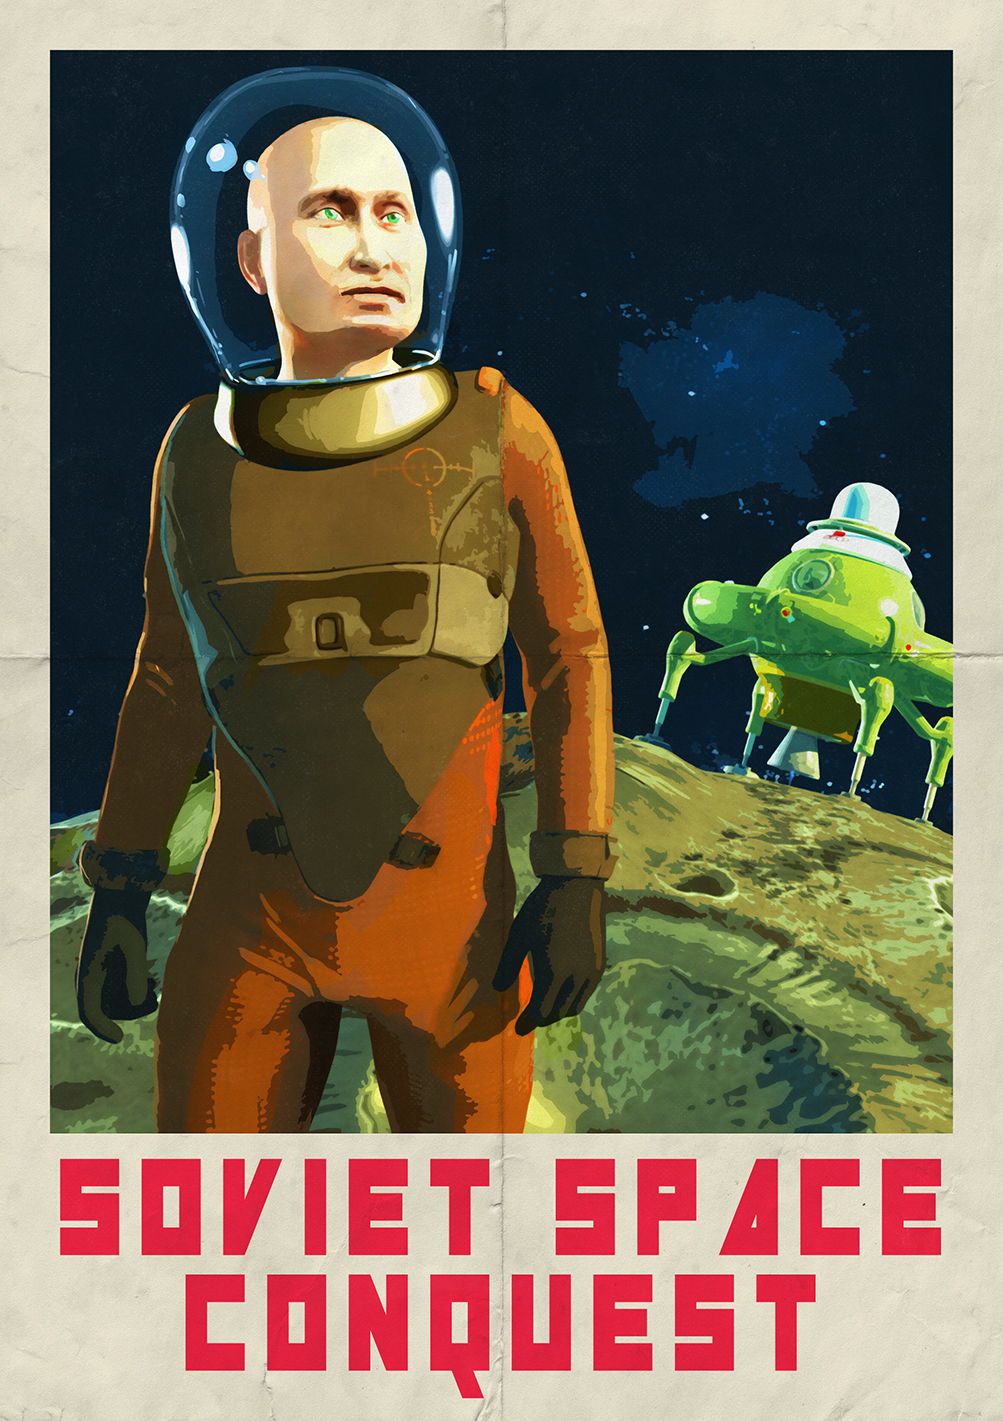 Soviet Space Conquest - The Putin Chronicles